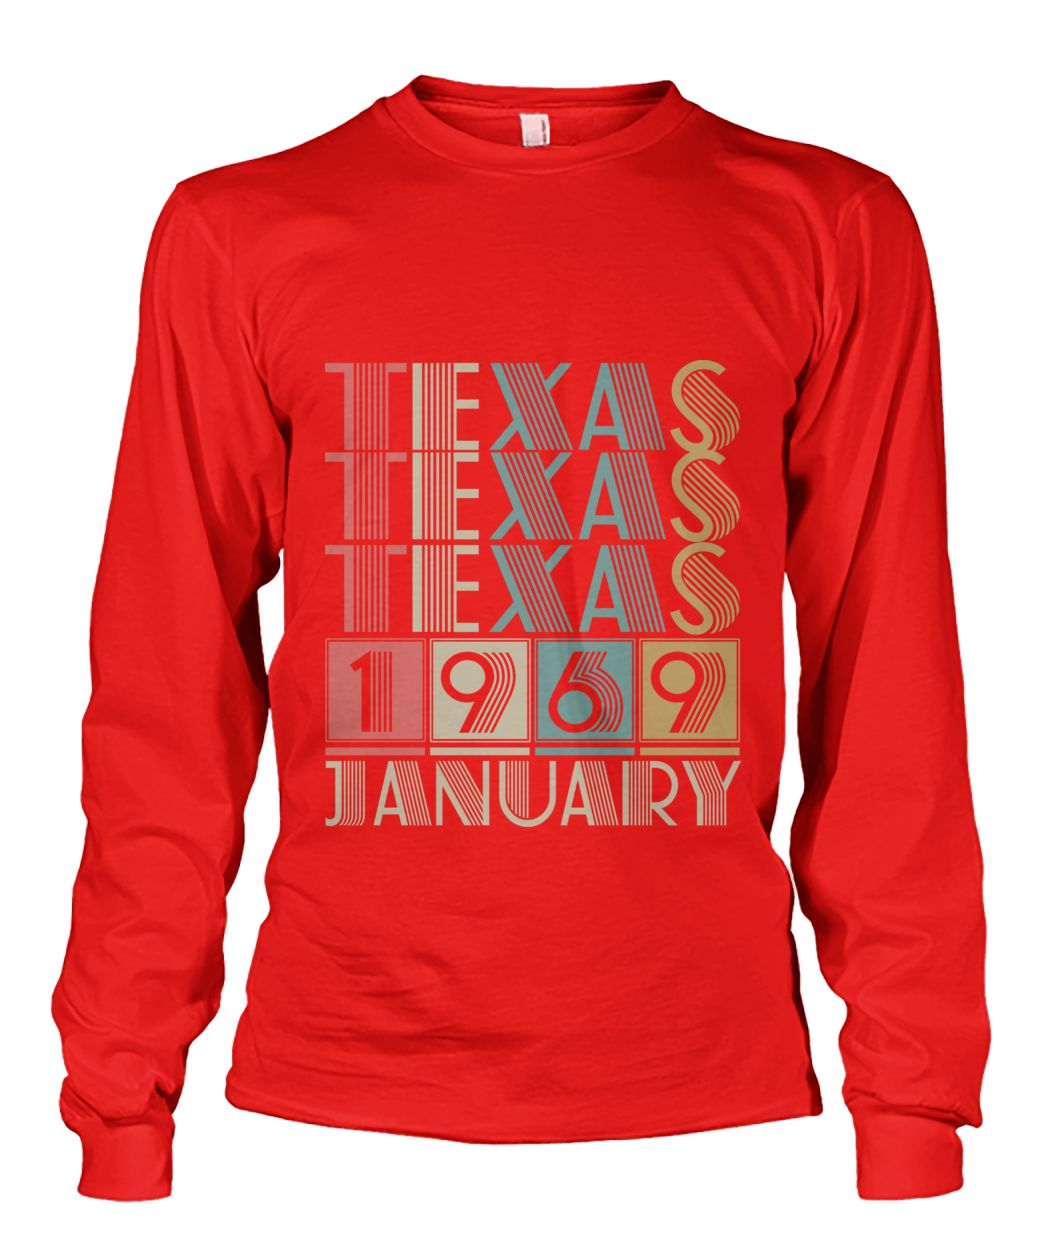 Born in Texas in January 1969 t shirt-Short Sleeves - TEEHOT.COM